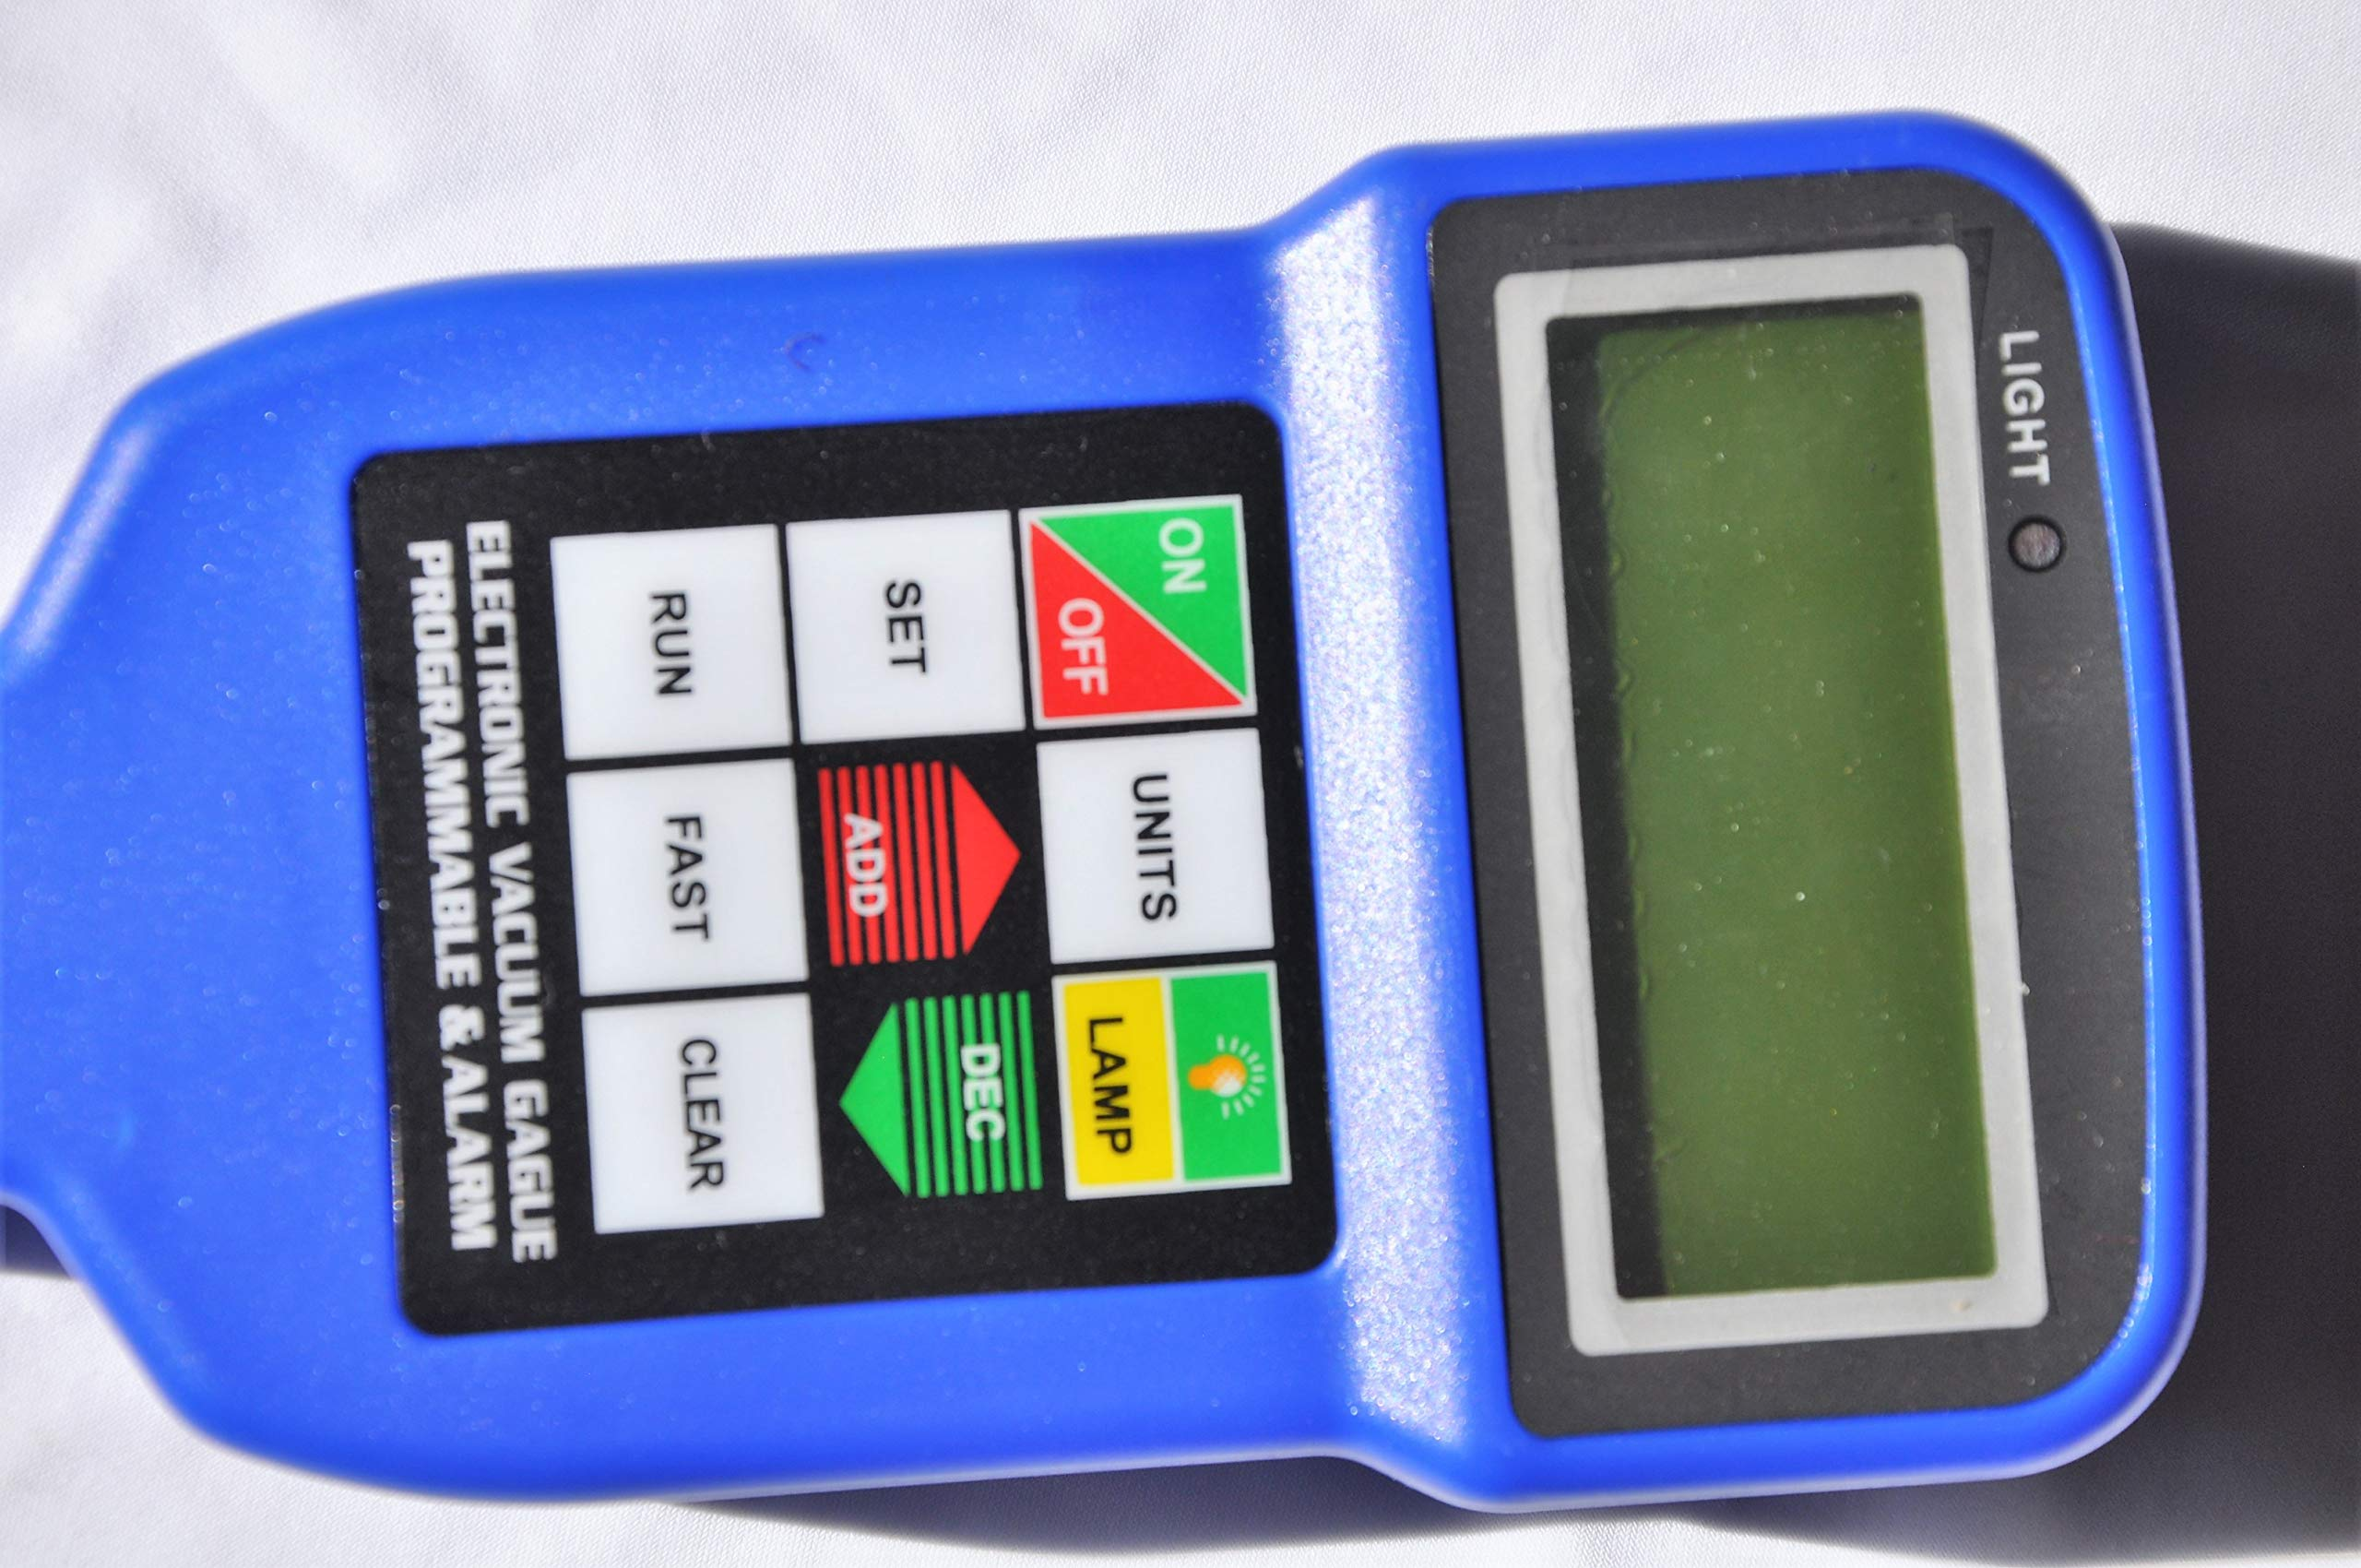 Deep Vacuum Micron Gauge/Digital Meter: AC HVAC Air Condition Refrigeration System Evacuation Optimum Test Tool, Most Accurate on The Market by VIOT (Image #3)